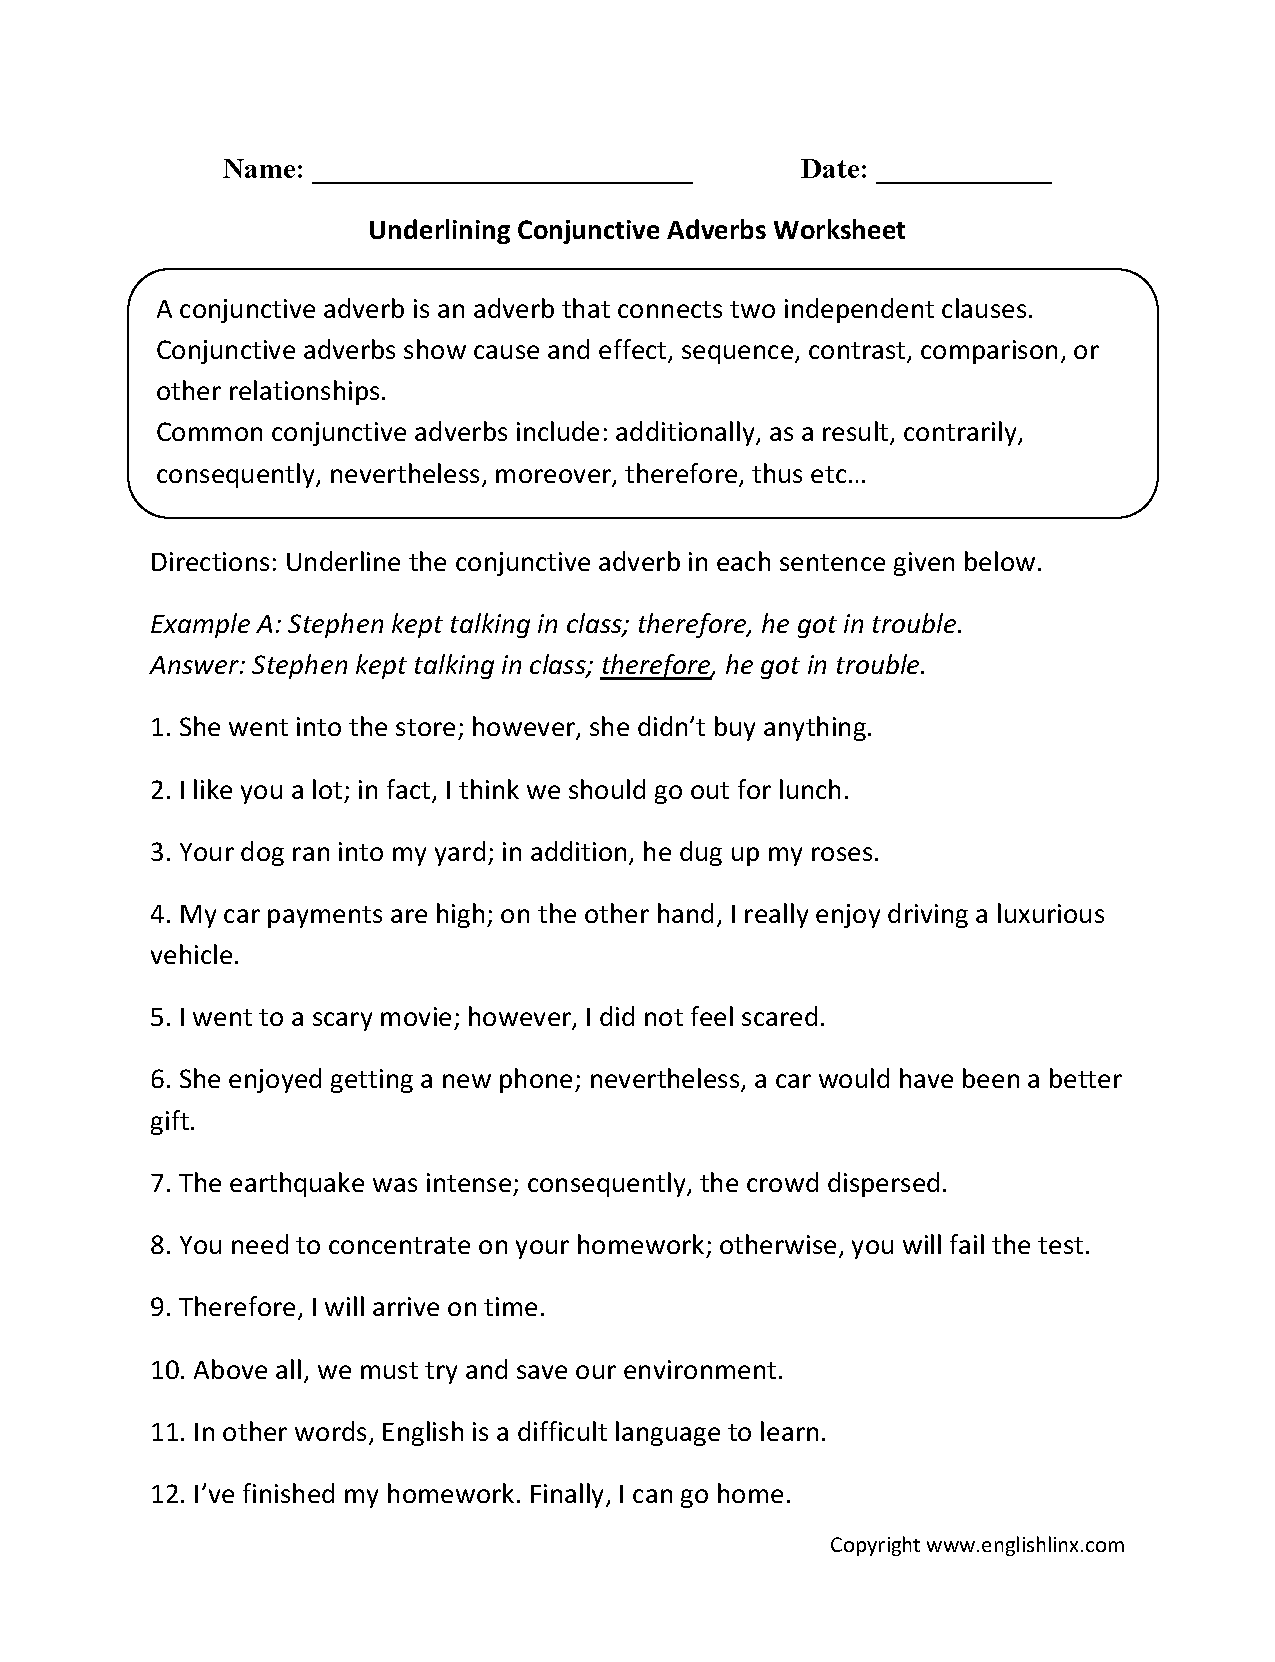 Weirdmailus  Outstanding Englishlinxcom  Conjunctions Worksheets With Likable Worksheet With Endearing Common Core Math Worksheets Th Grade Also Grammar Worksheets Th Grade In Addition Charles Law Worksheet Answers With Work And Rule Of  Worksheet As Well As Science Worksheets For Kindergarten Additionally Nd Grade Place Value Worksheets From Englishlinxcom With Weirdmailus  Likable Englishlinxcom  Conjunctions Worksheets With Endearing Worksheet And Outstanding Common Core Math Worksheets Th Grade Also Grammar Worksheets Th Grade In Addition Charles Law Worksheet Answers With Work From Englishlinxcom